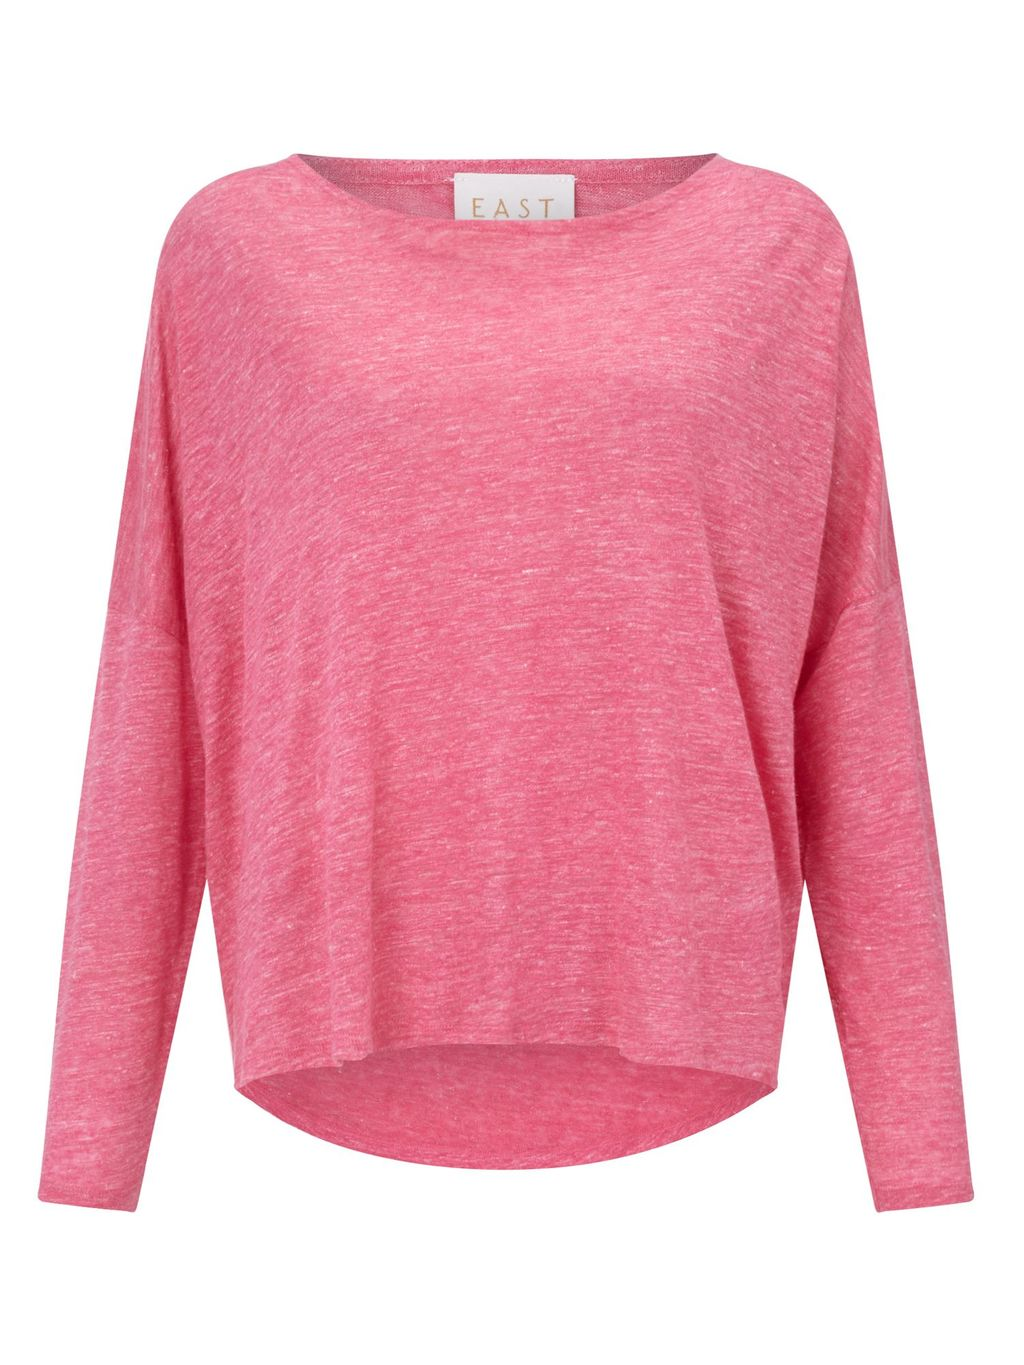 Oversized Linen Top, Raspberry - pattern: plain; predominant colour: pink; occasions: casual; length: standard; style: top; fibres: linen - 100%; fit: loose; neckline: crew; sleeve length: long sleeve; sleeve style: standard; texture group: linen; pattern type: fabric; season: s/s 2016; wardrobe: highlight